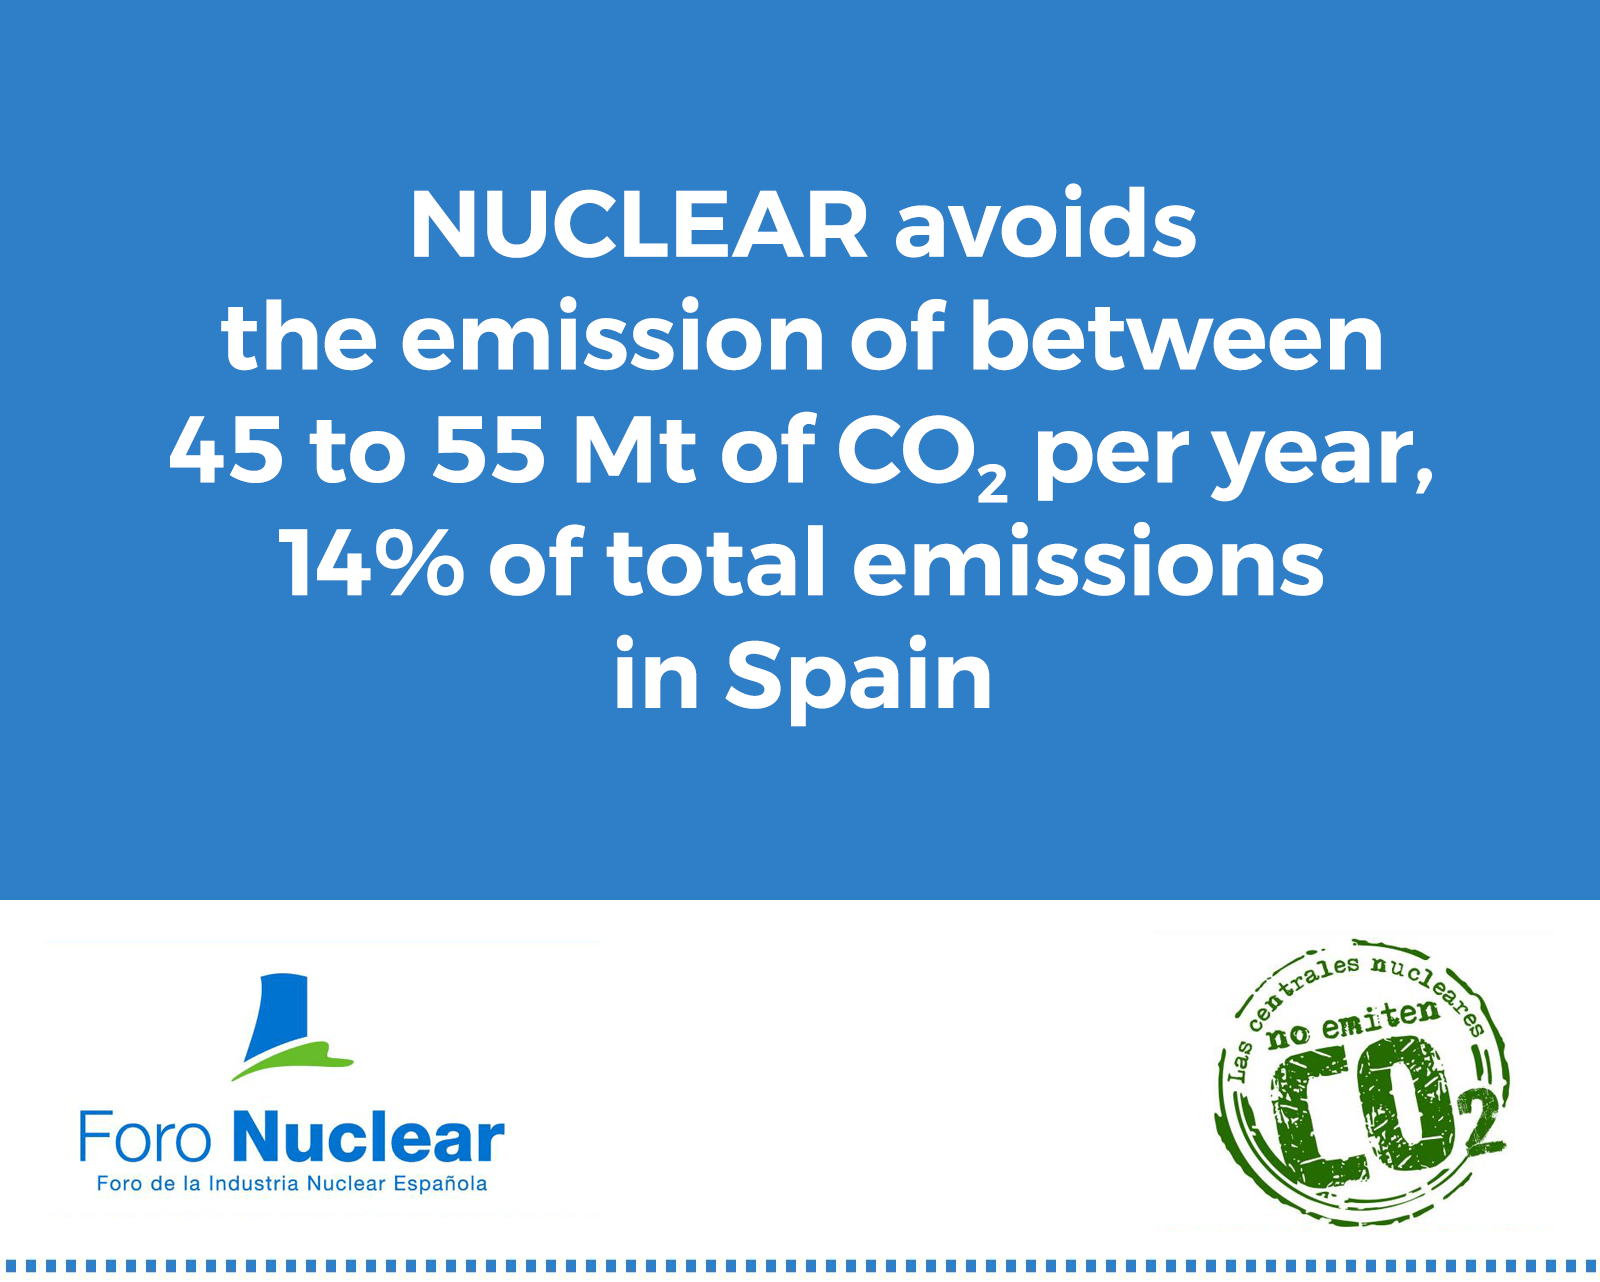 Cop21. Nuclear avoids the emission of between 45 to 55 Mt of CO<sub>2</sub> per year, 14% of total emissions in Spain